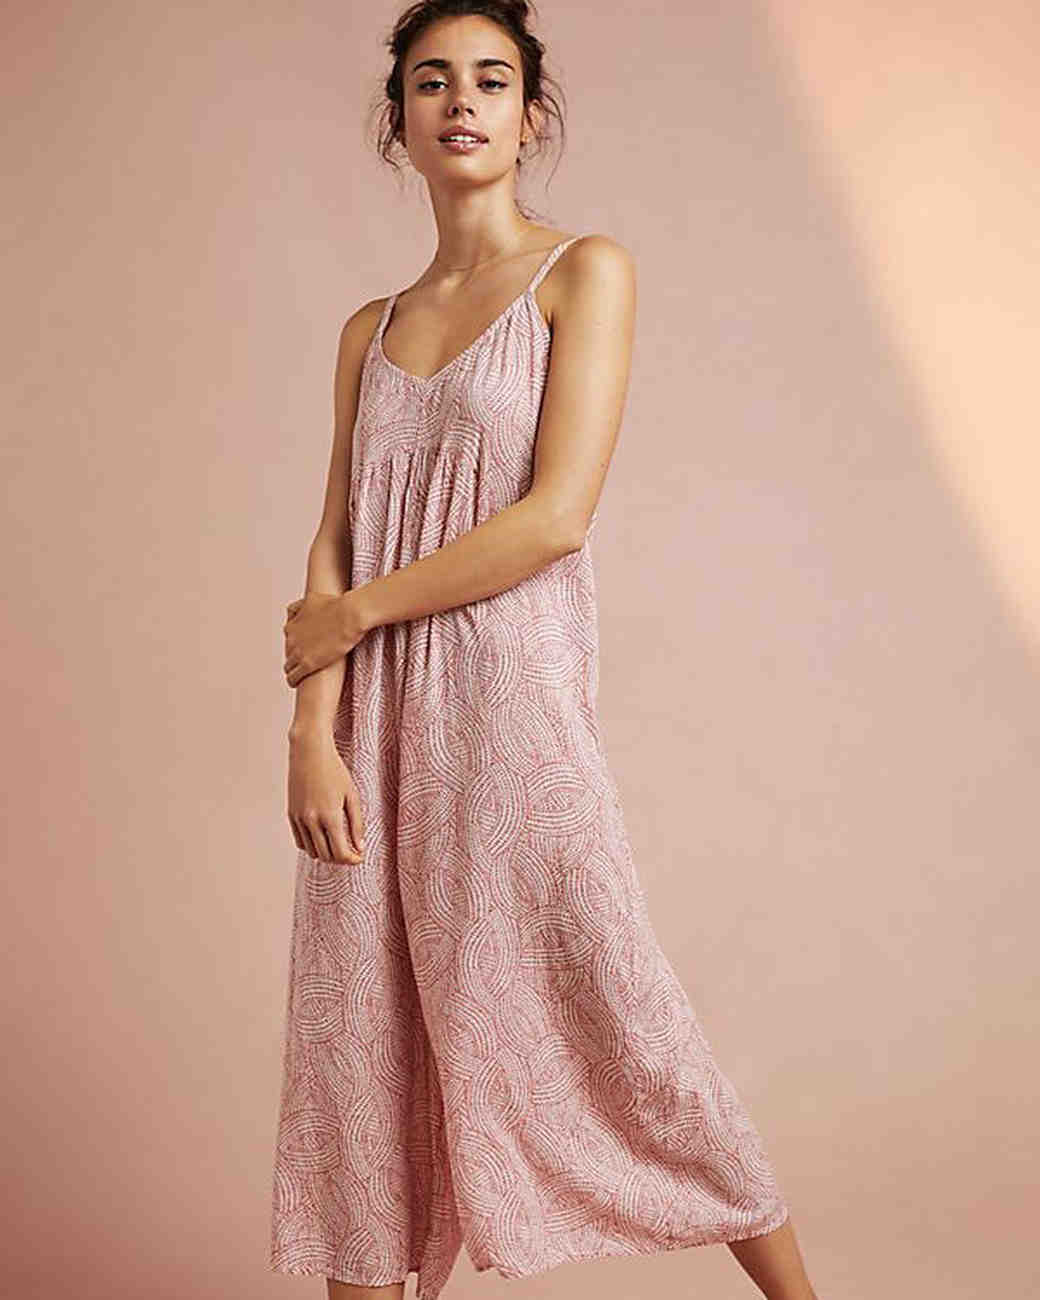 bb38a993dbd Bridesmaids  Robes Alternatives to Set You and Your  Maids Apart